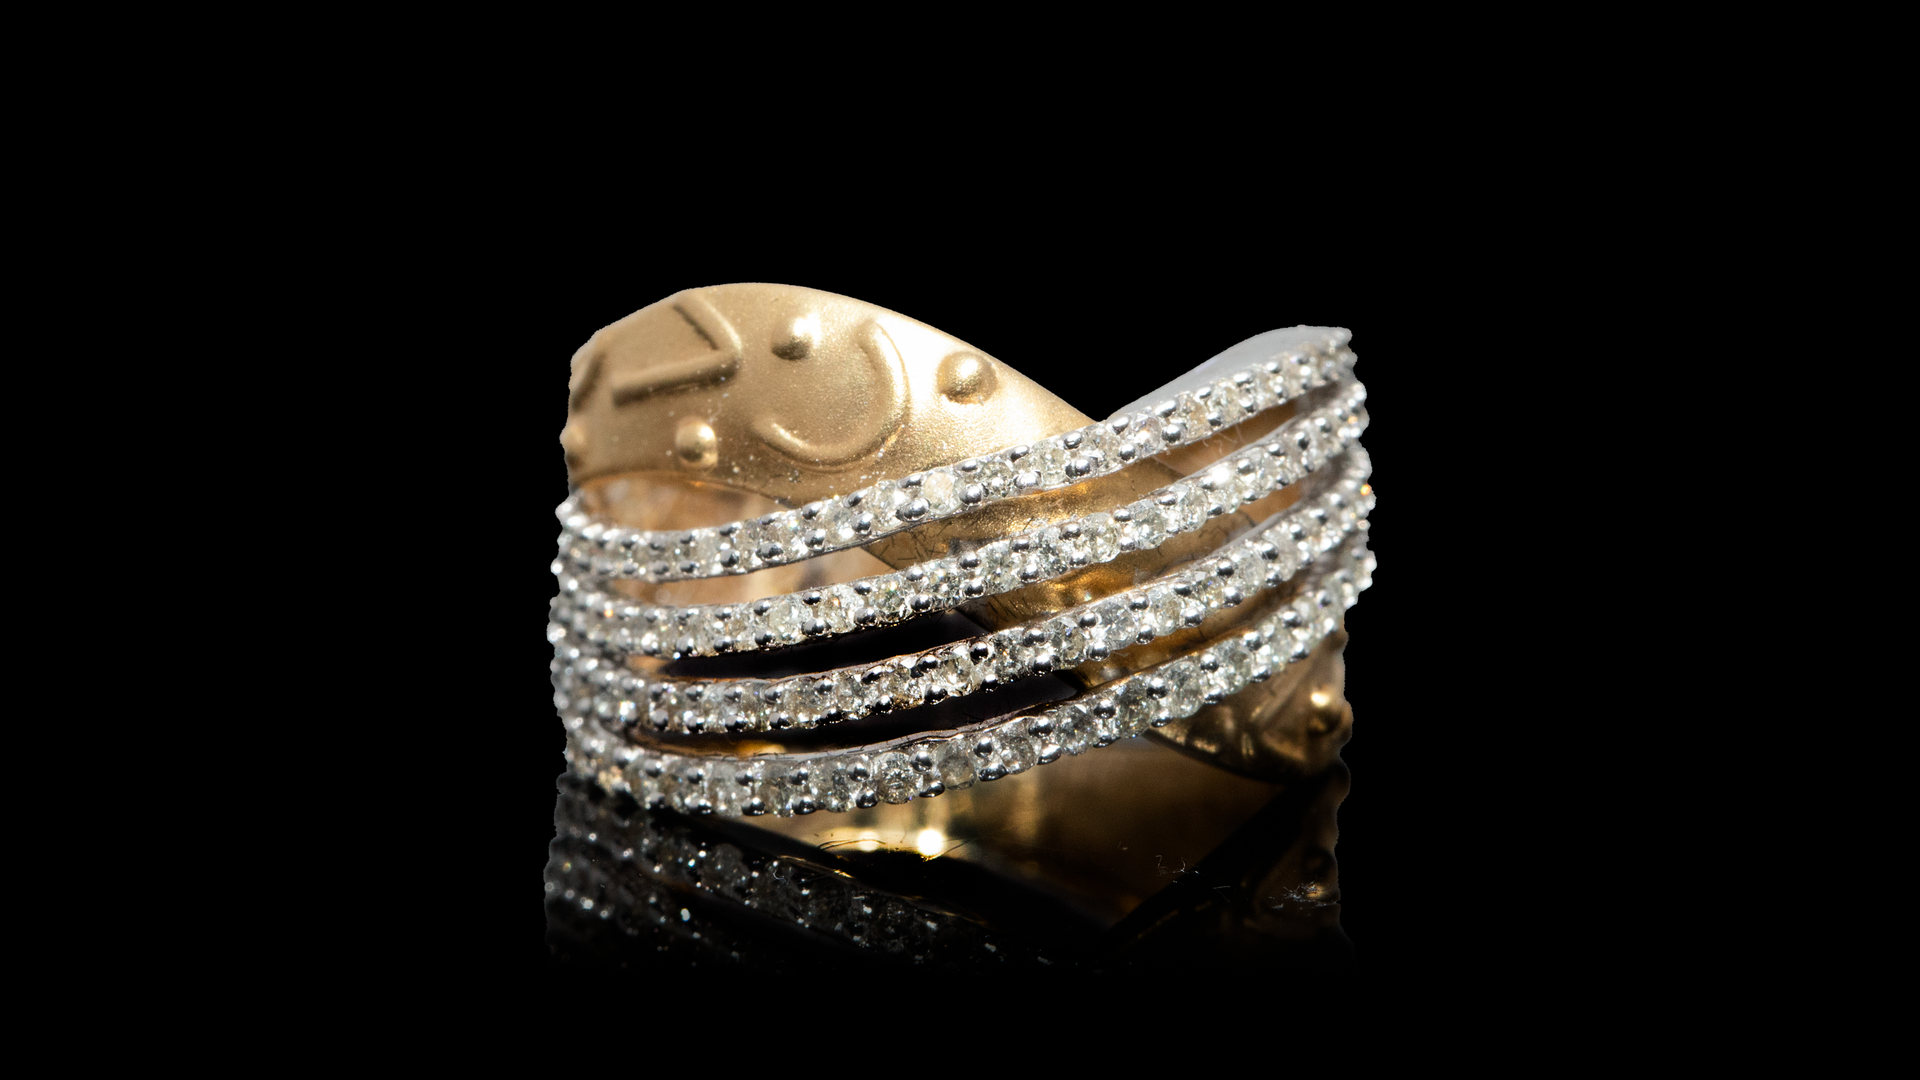 [SPECIAL] 14k Yellow Gold Cocktail Style Diamond Ring